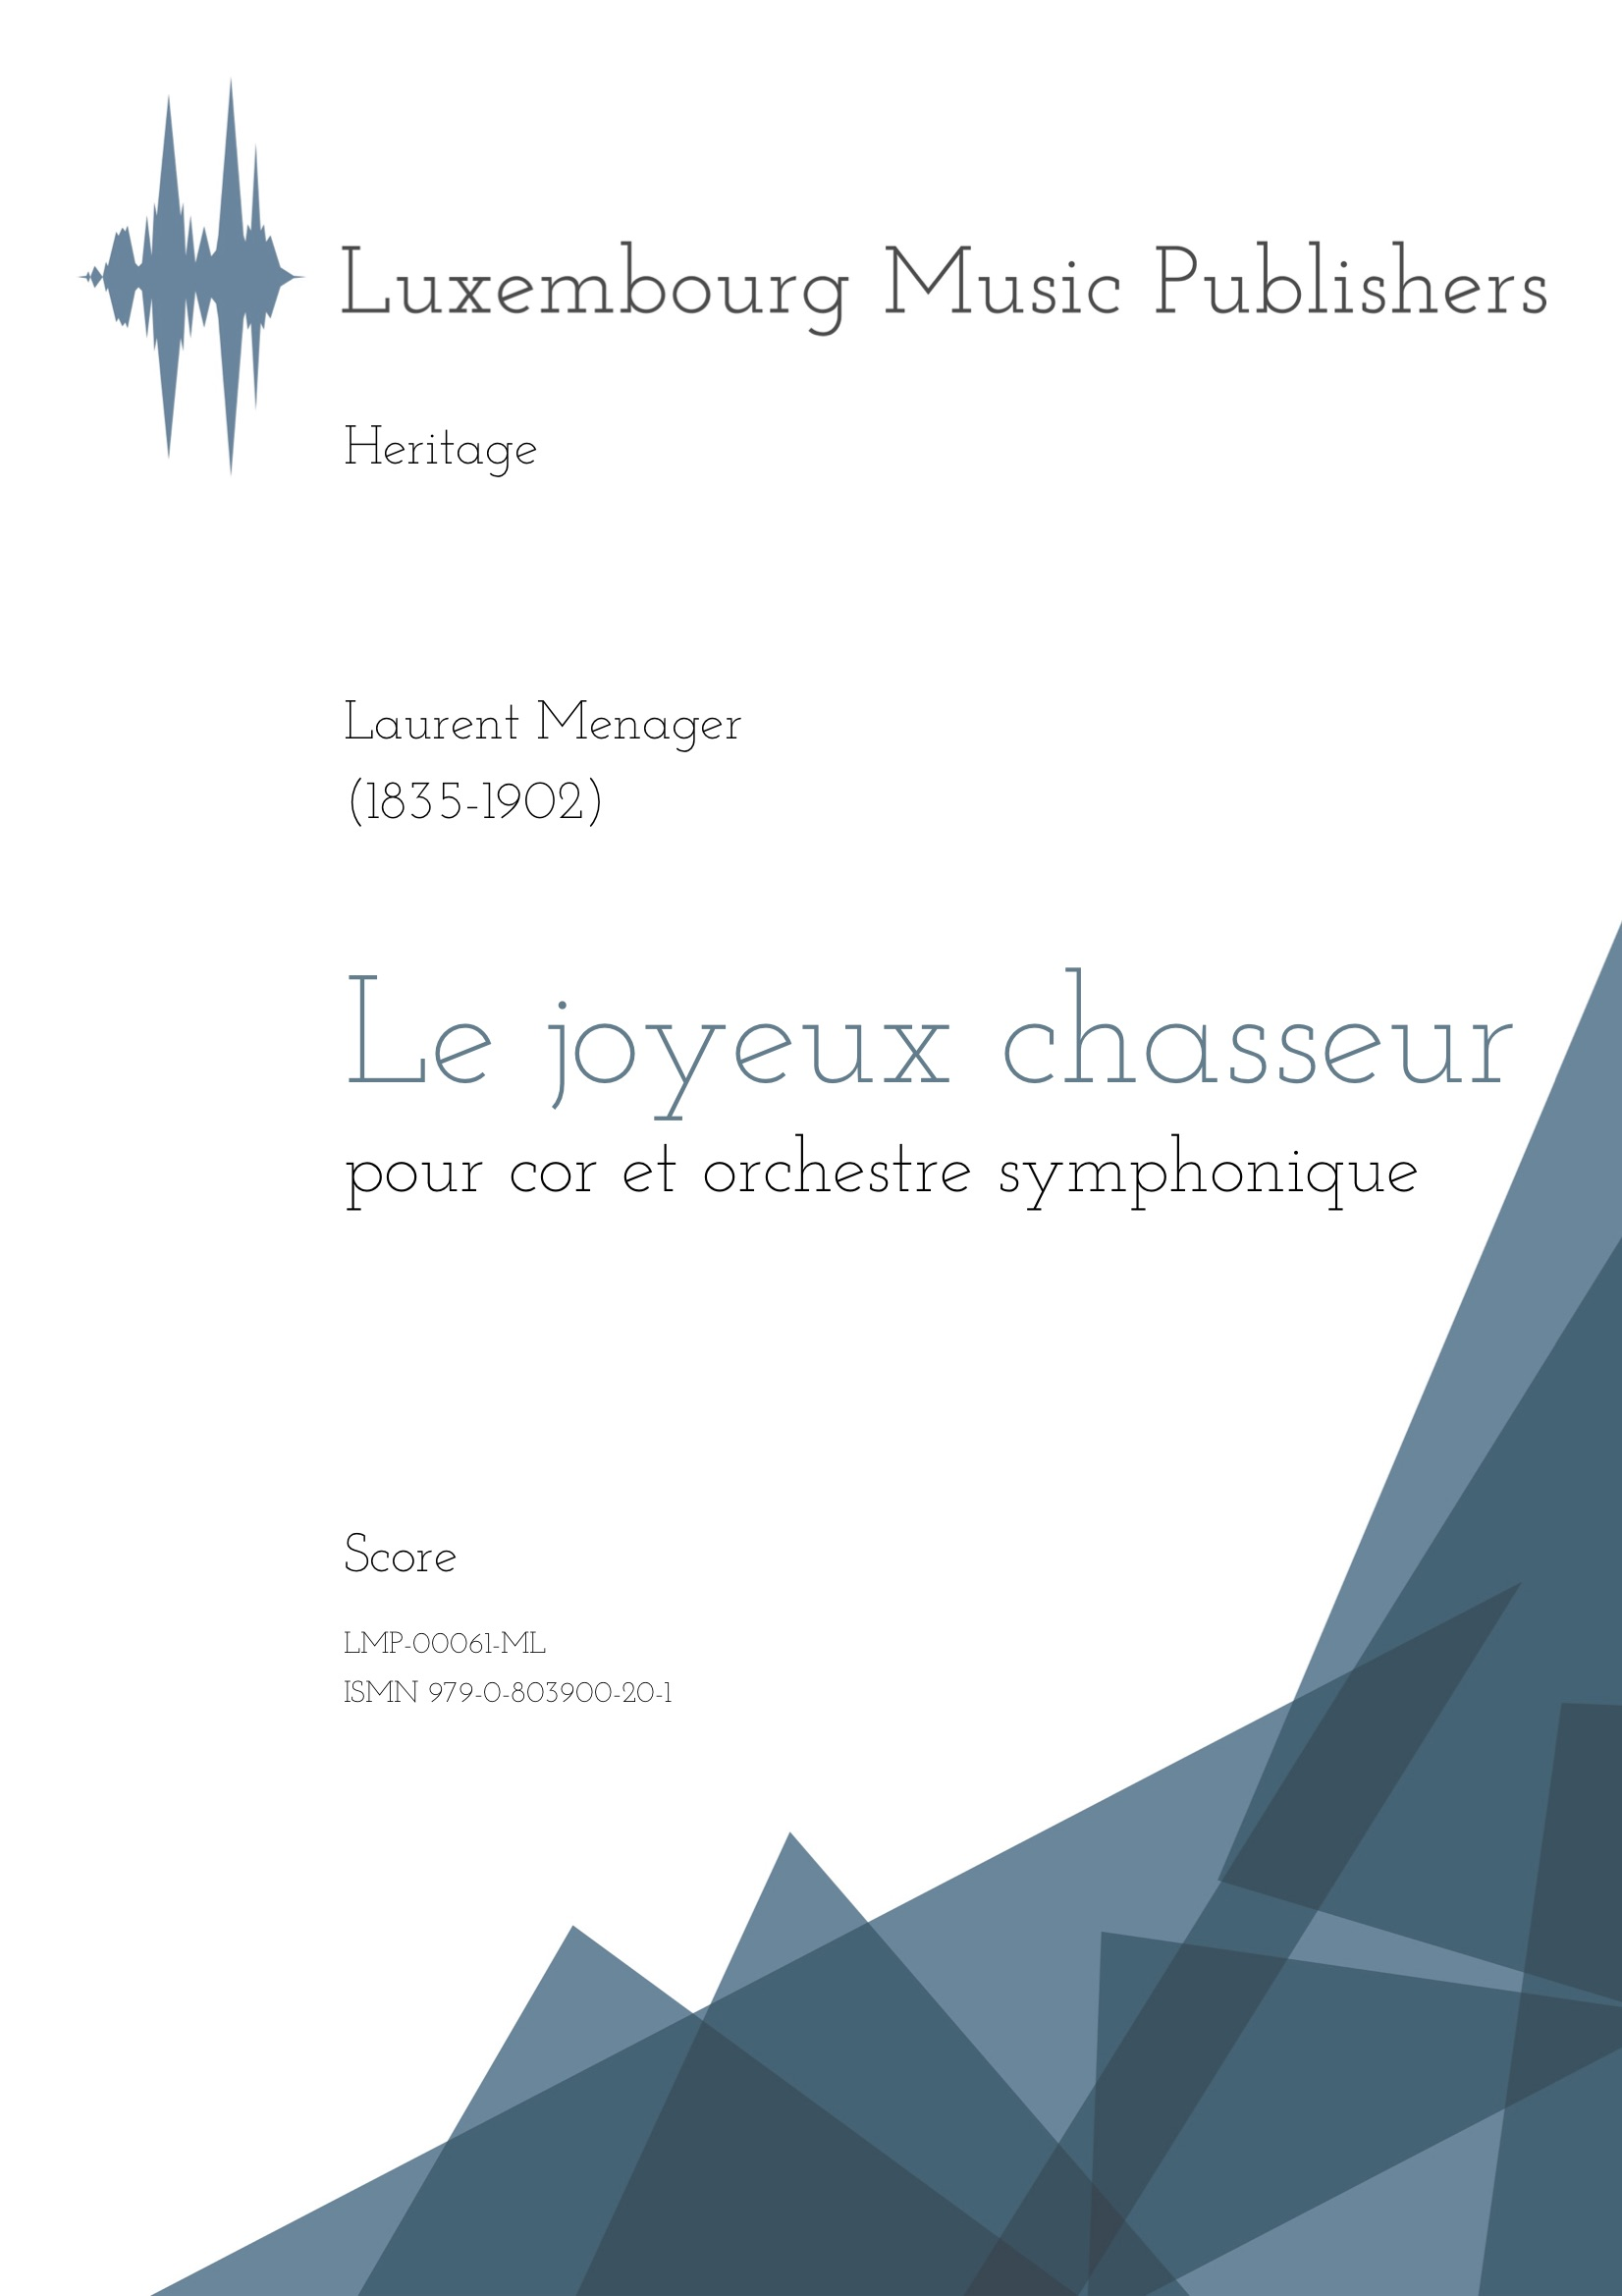 Le joyeux chasseur. Sheet Music by Laurent Menager, composer. Music for horn solo and symphonic orchestra. Music for solo instrument and orchestra. Score.